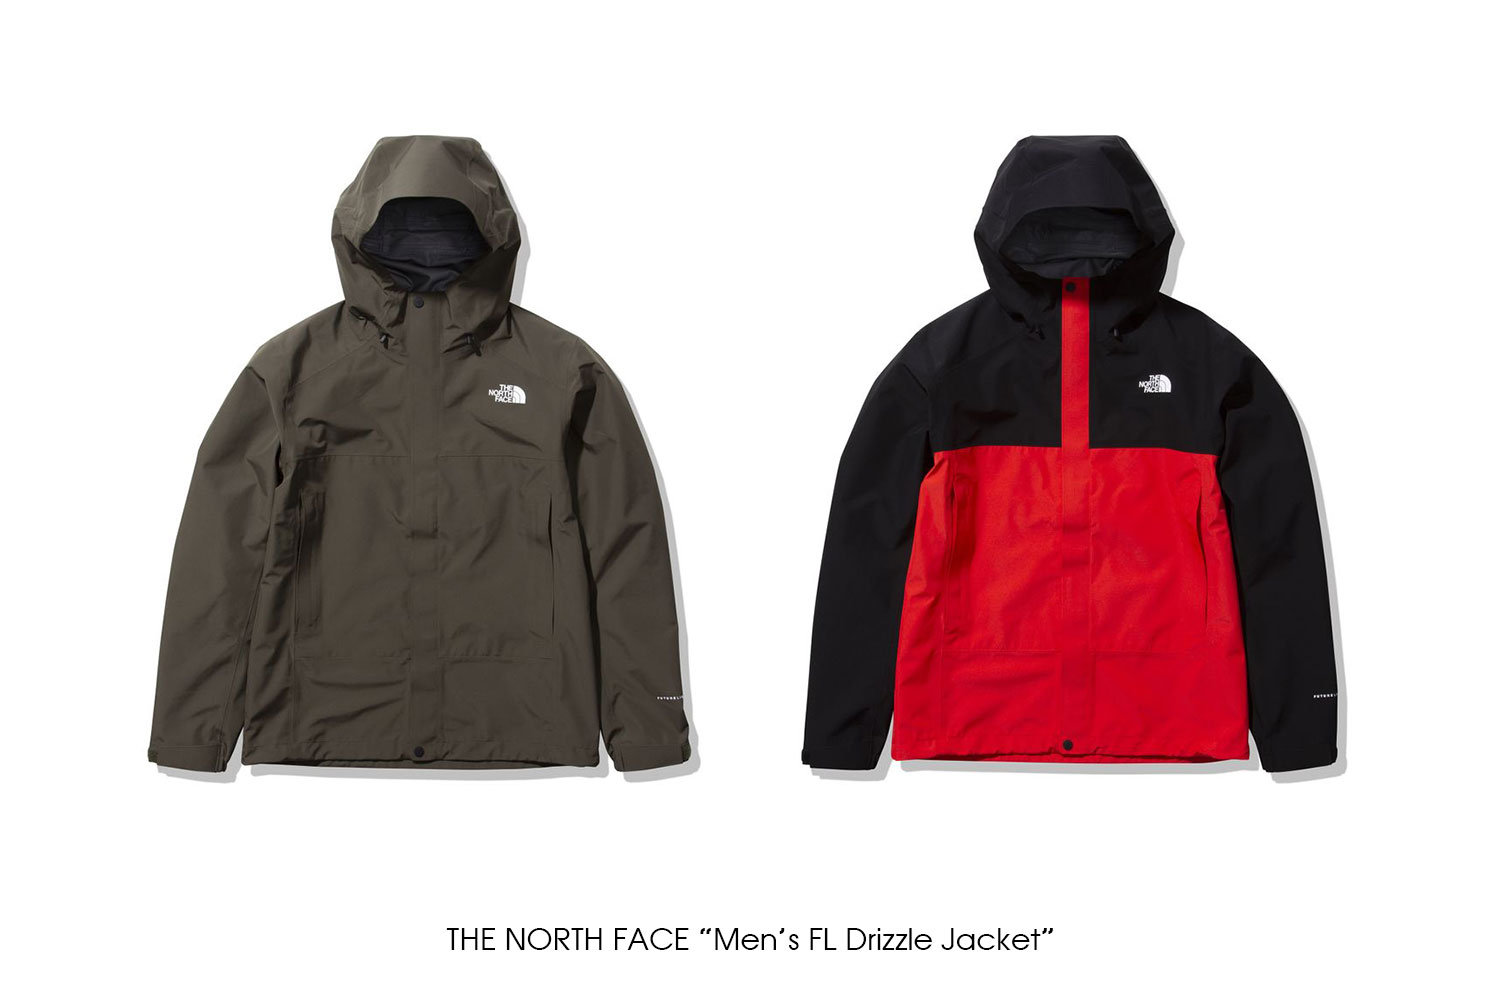 """THE NORTH FACE """"Men's FL Drizzle Jacket"""""""